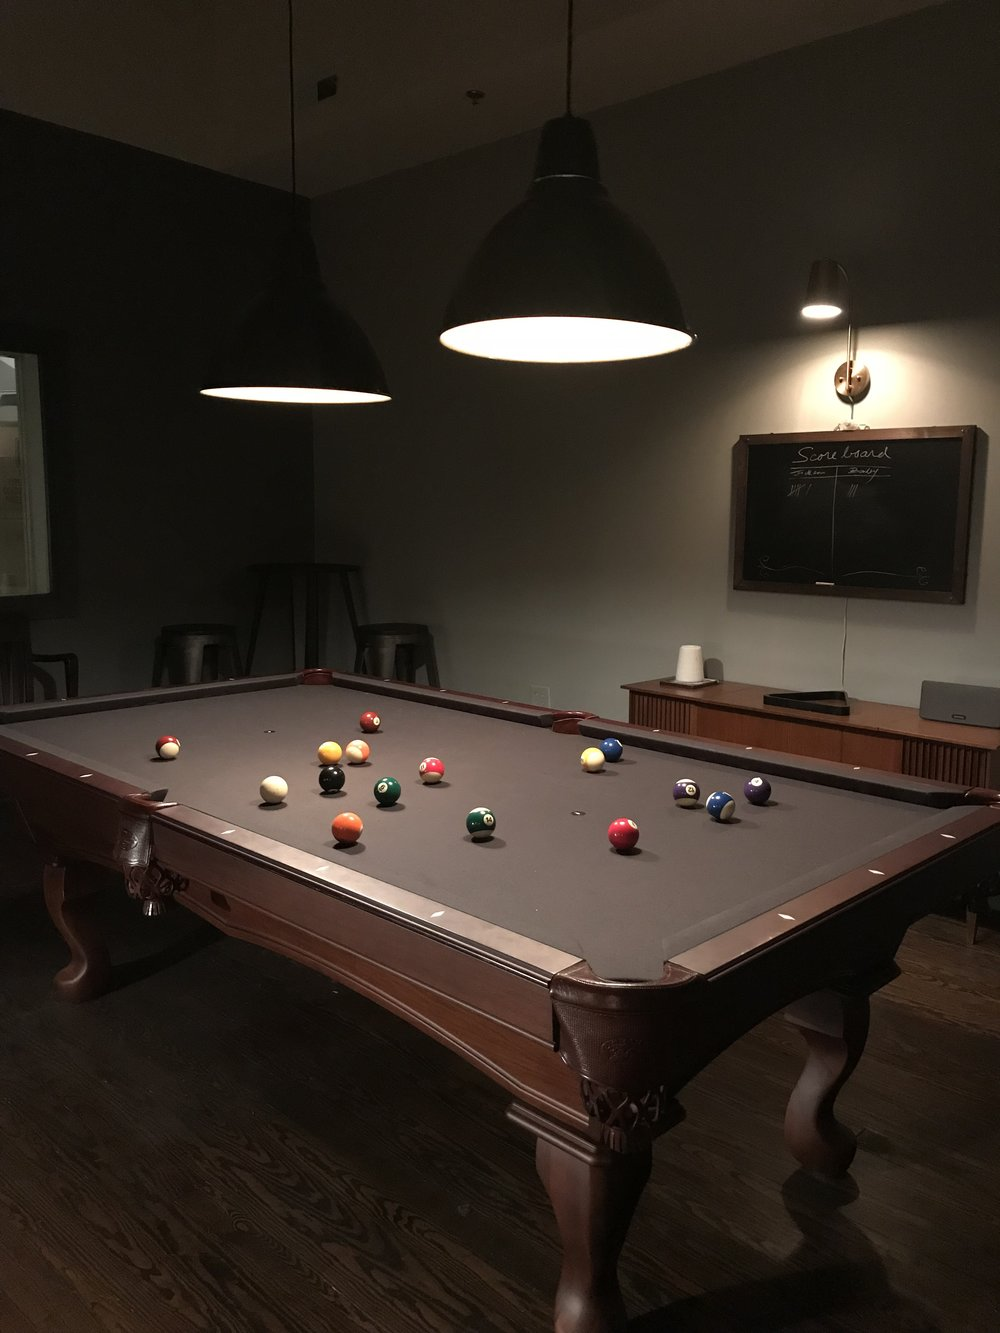 Our game room has an 8' Olhausen billiards table along with foosball and vintage arcades.